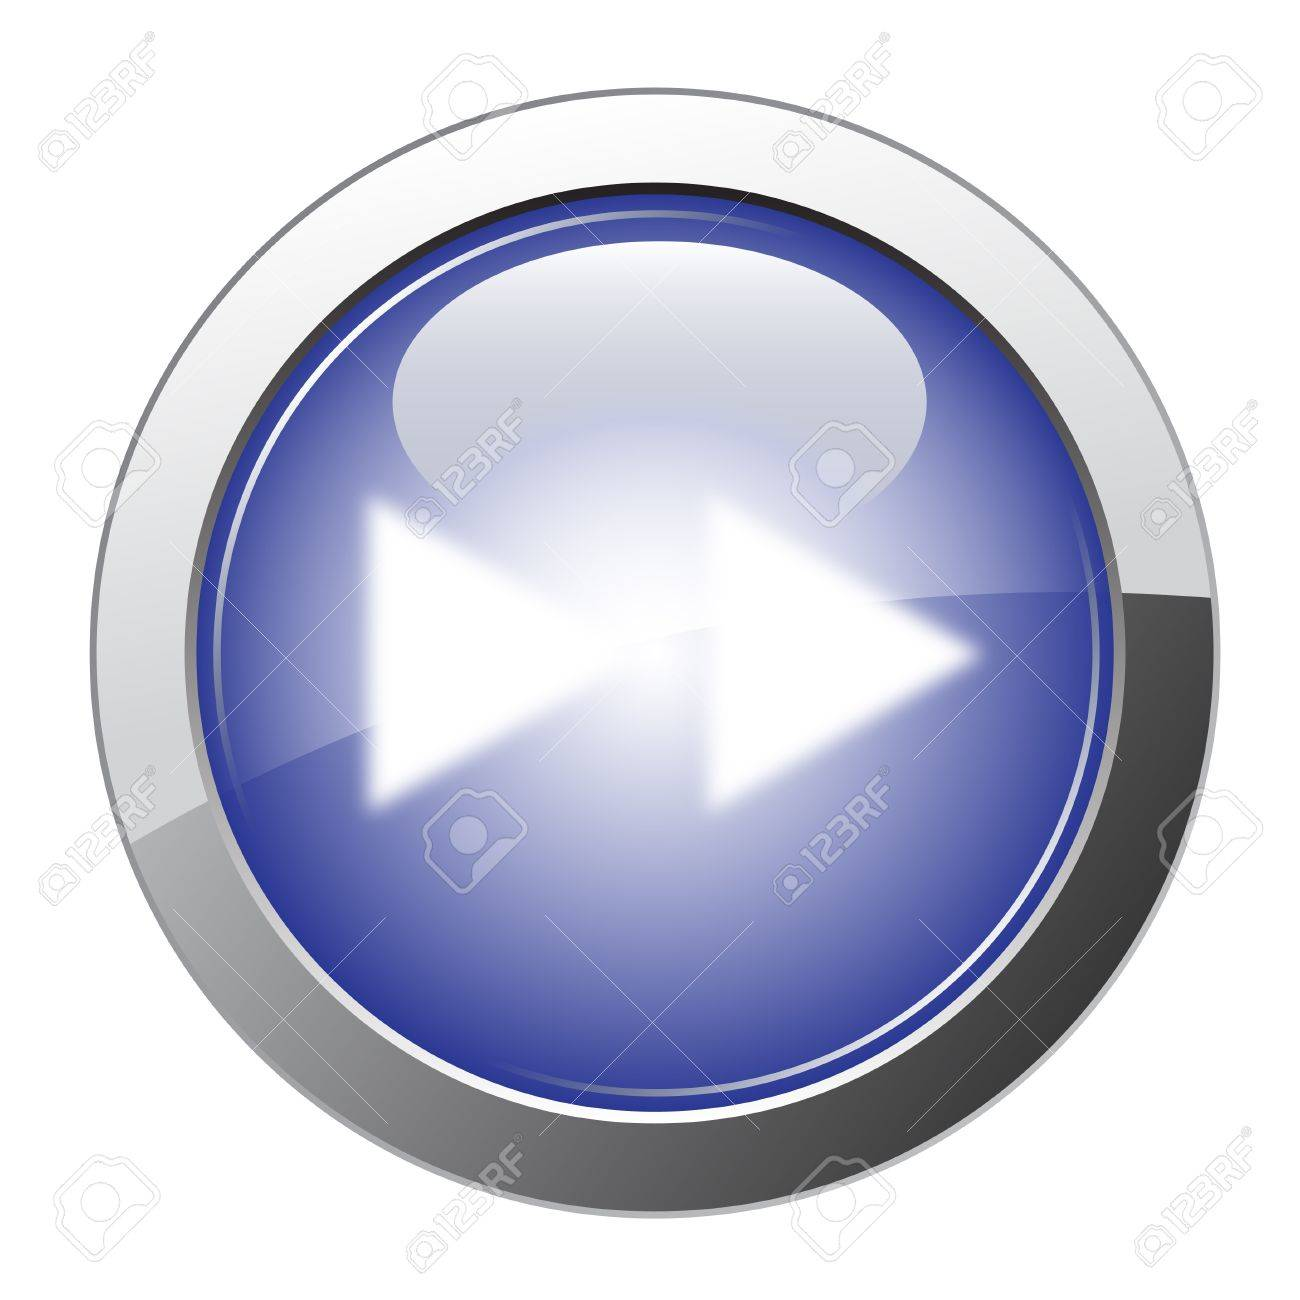 Blue Glossy Fast Forward Button Stock Vector - 10310351